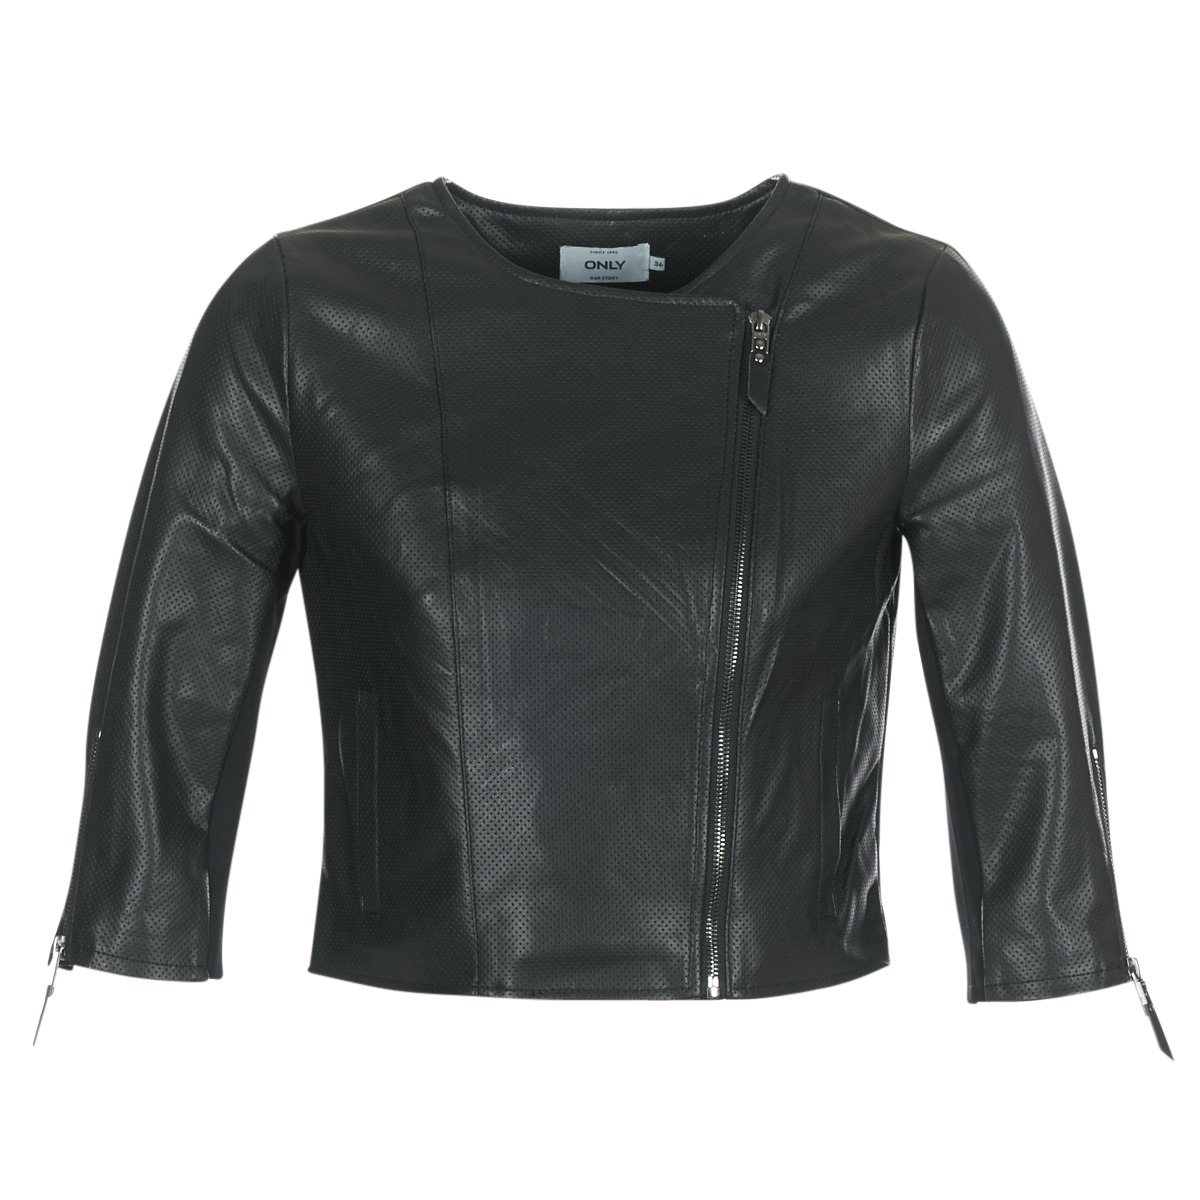 Giacca in pelle donna Only  MILA  Nero Only 5713734030384